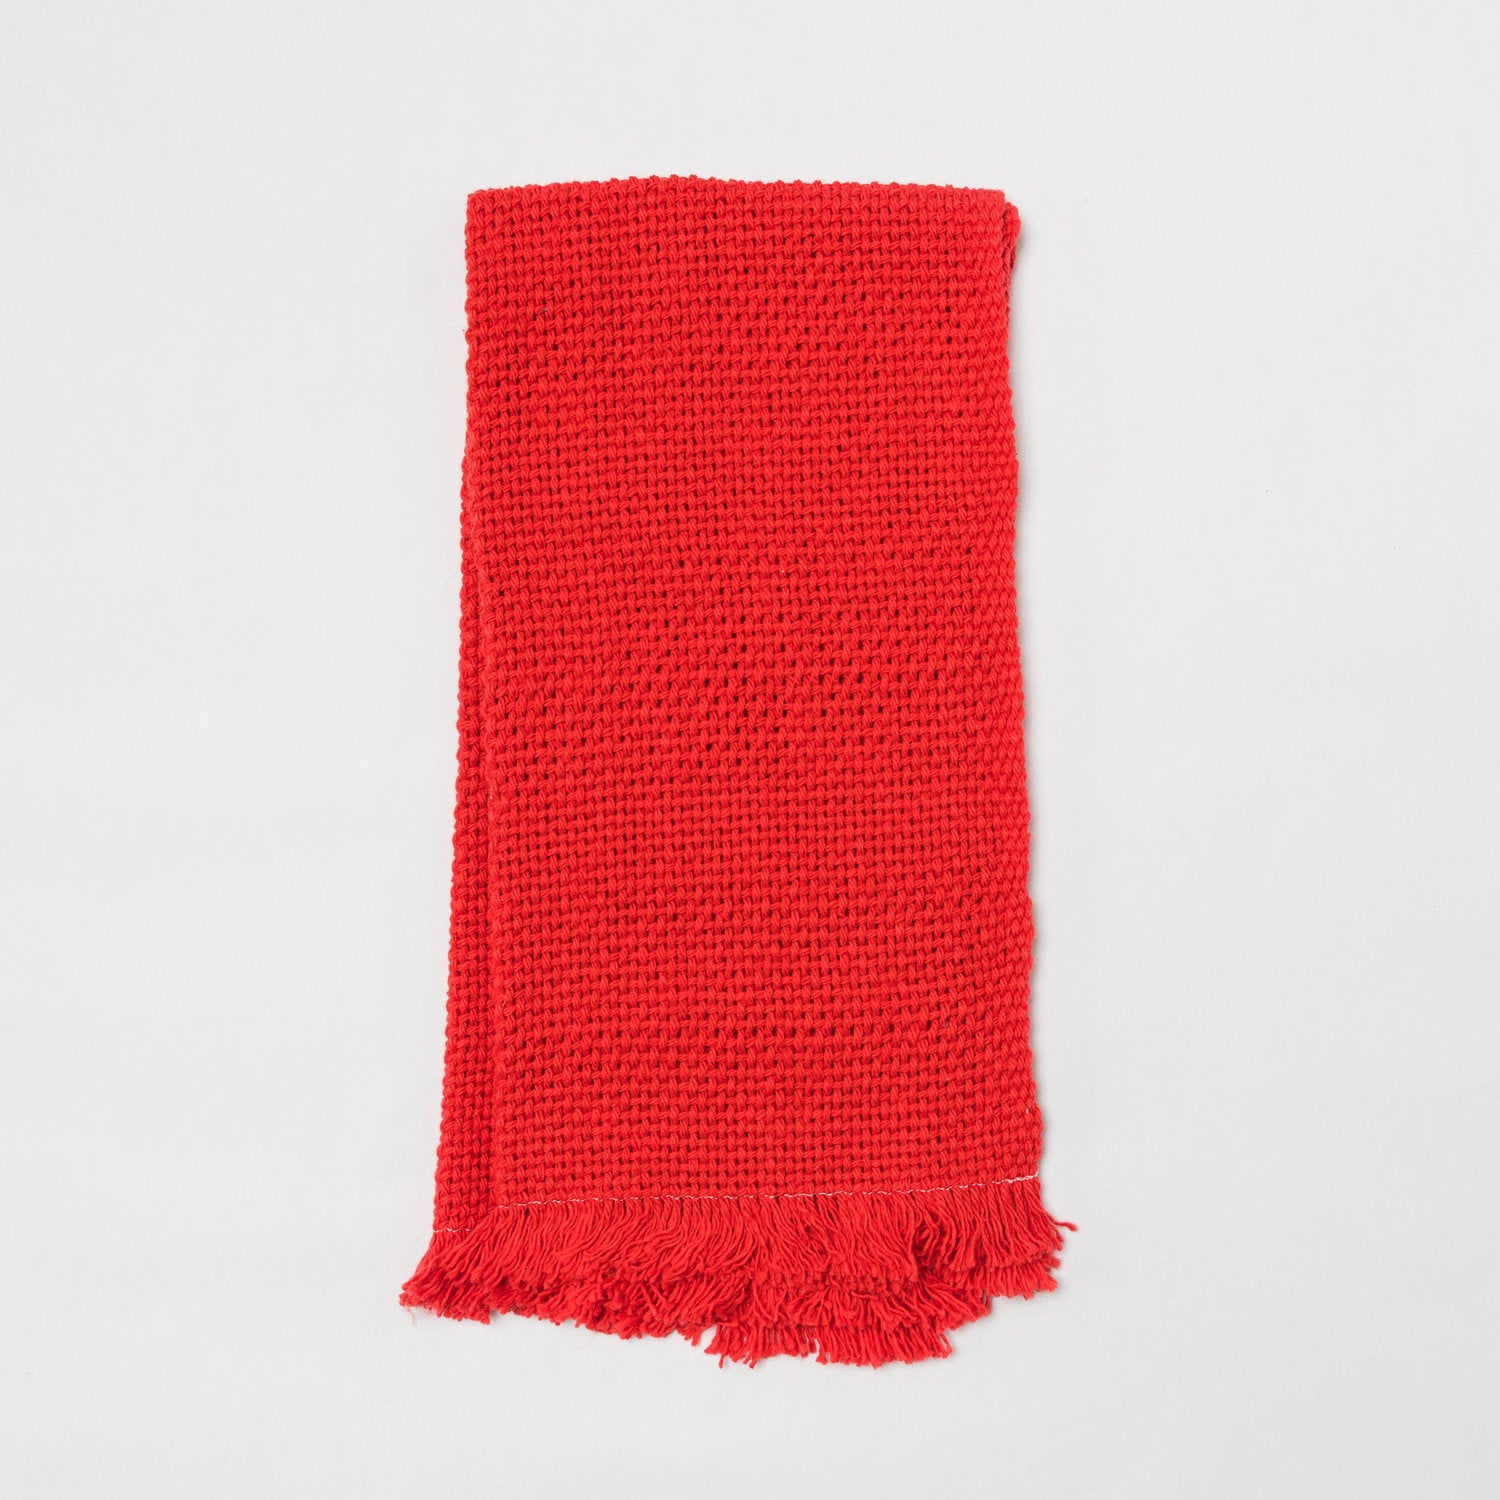 KD Weave Red Hand Towel, Set of 2